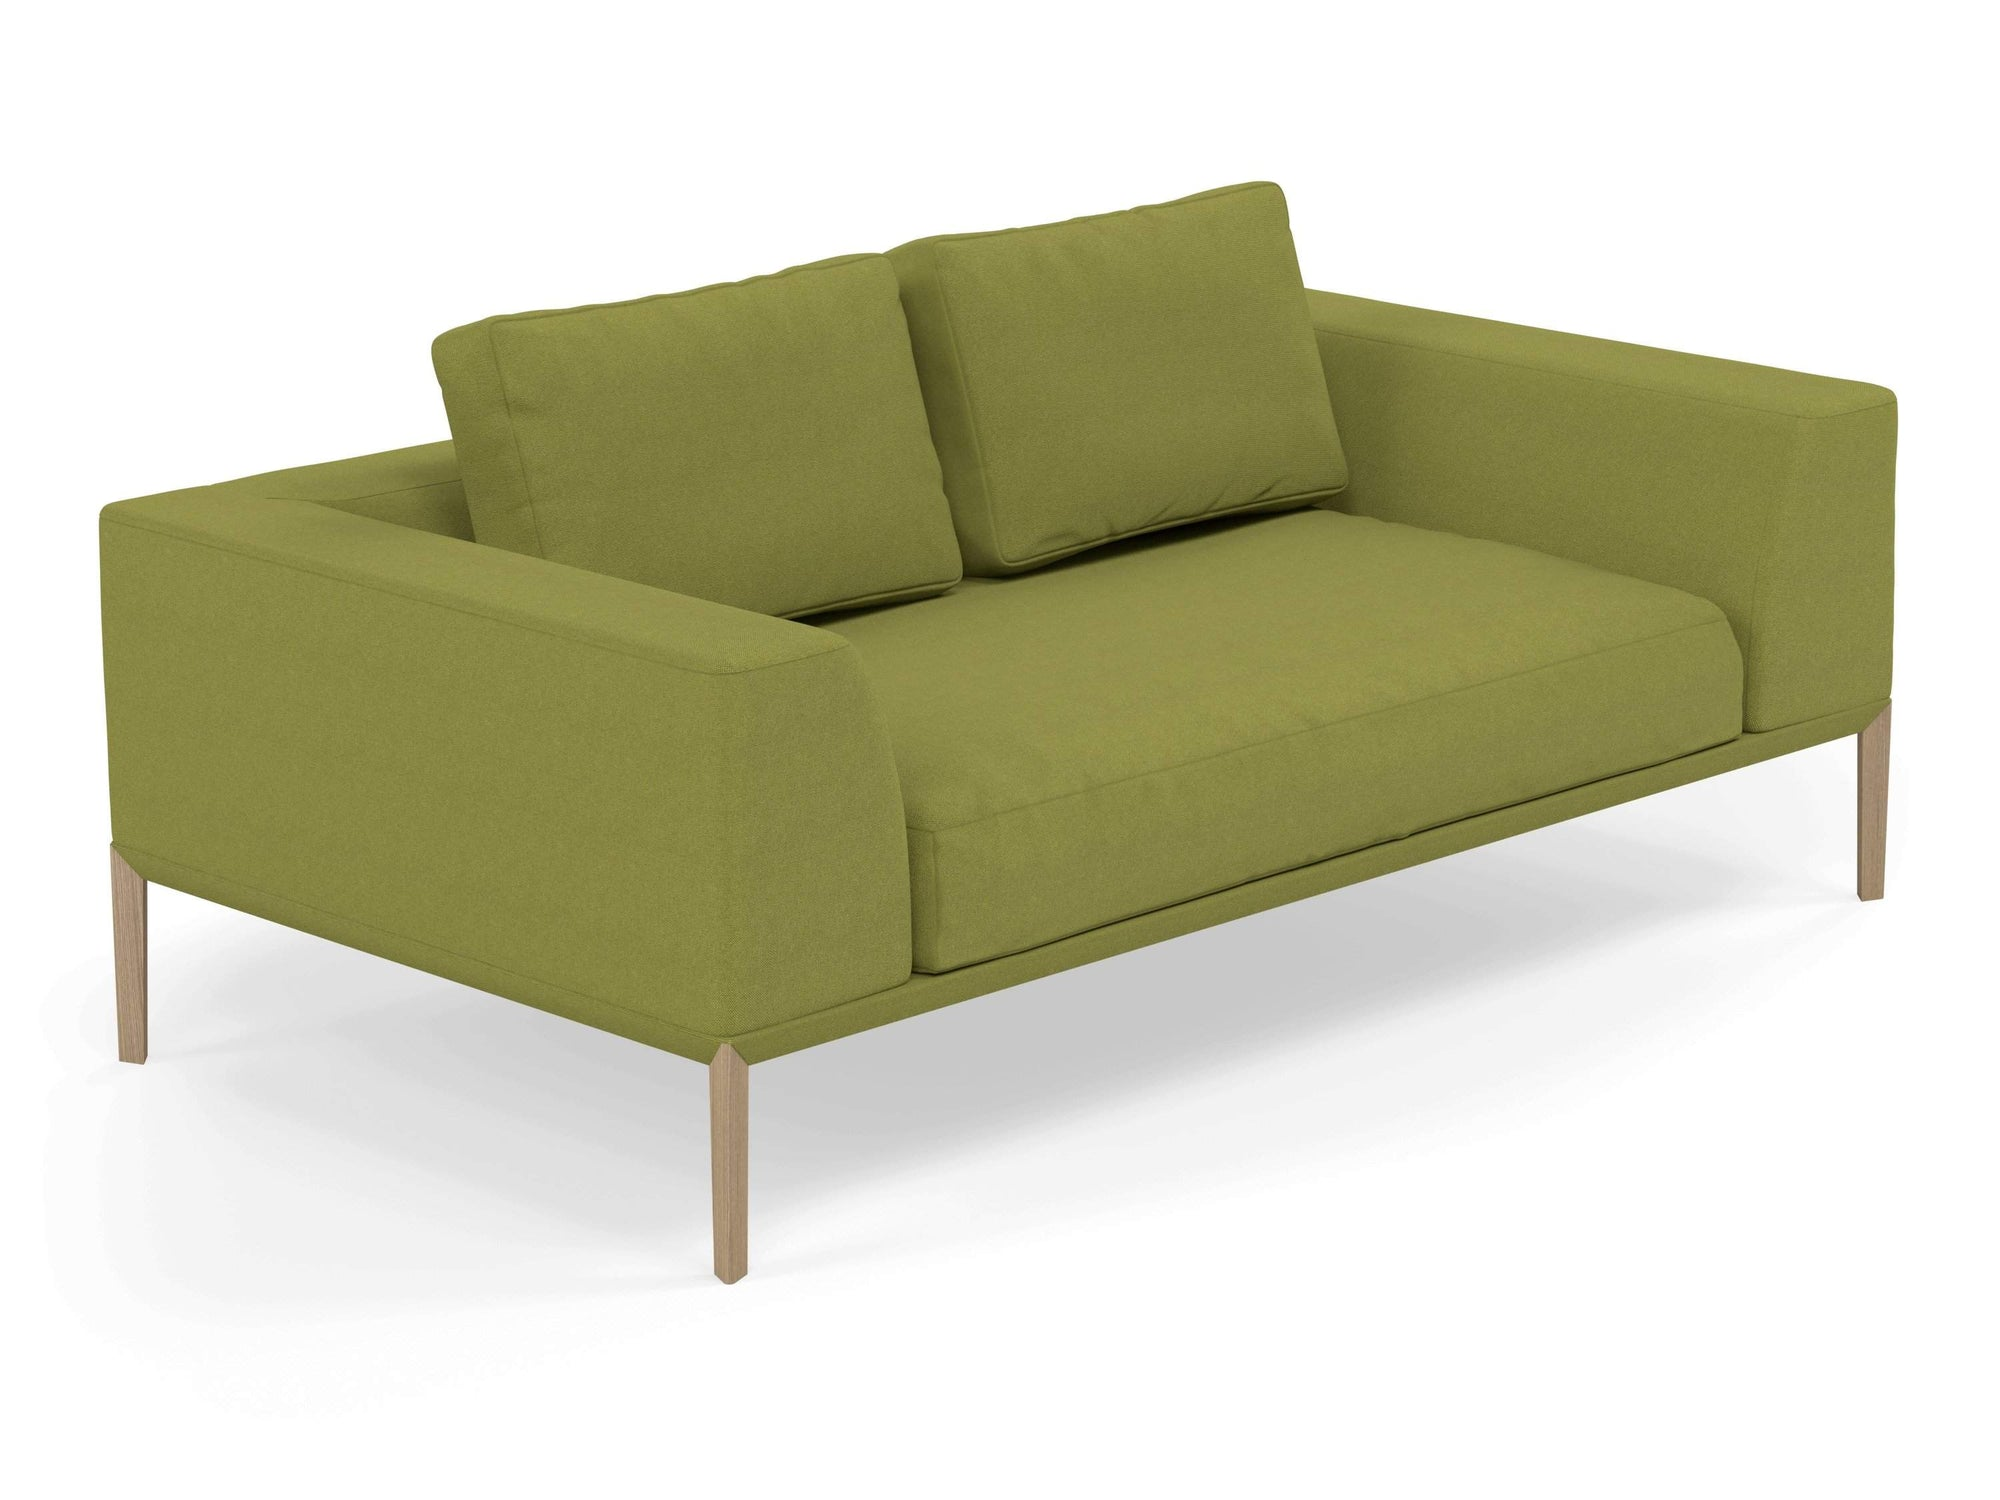 Modern 2 Seater Sofa with 2 Armrests in Lime Green Fabric-Natural Oak-Distinct Designs (London) Ltd